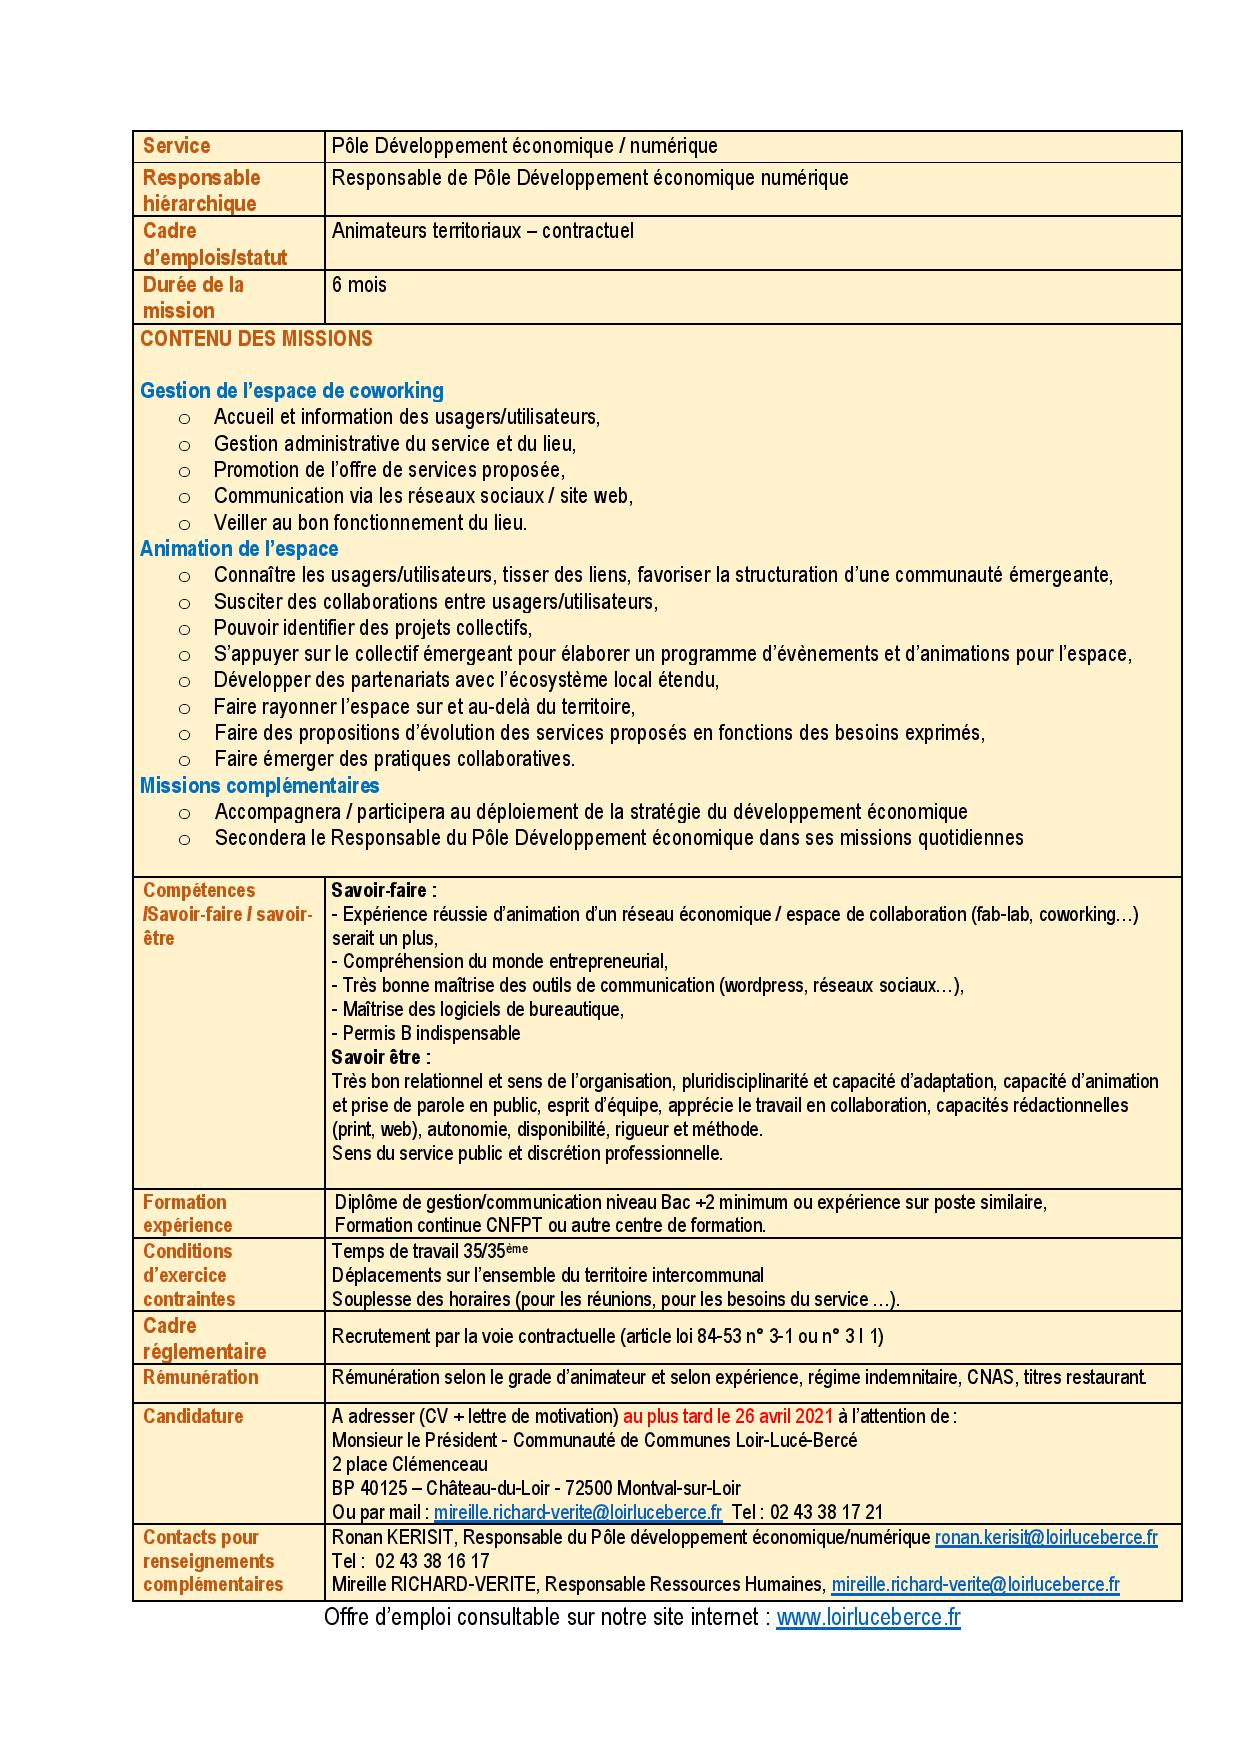 Offre d emploi Manager Loircowork CDD 6 mois-page-002.jpg